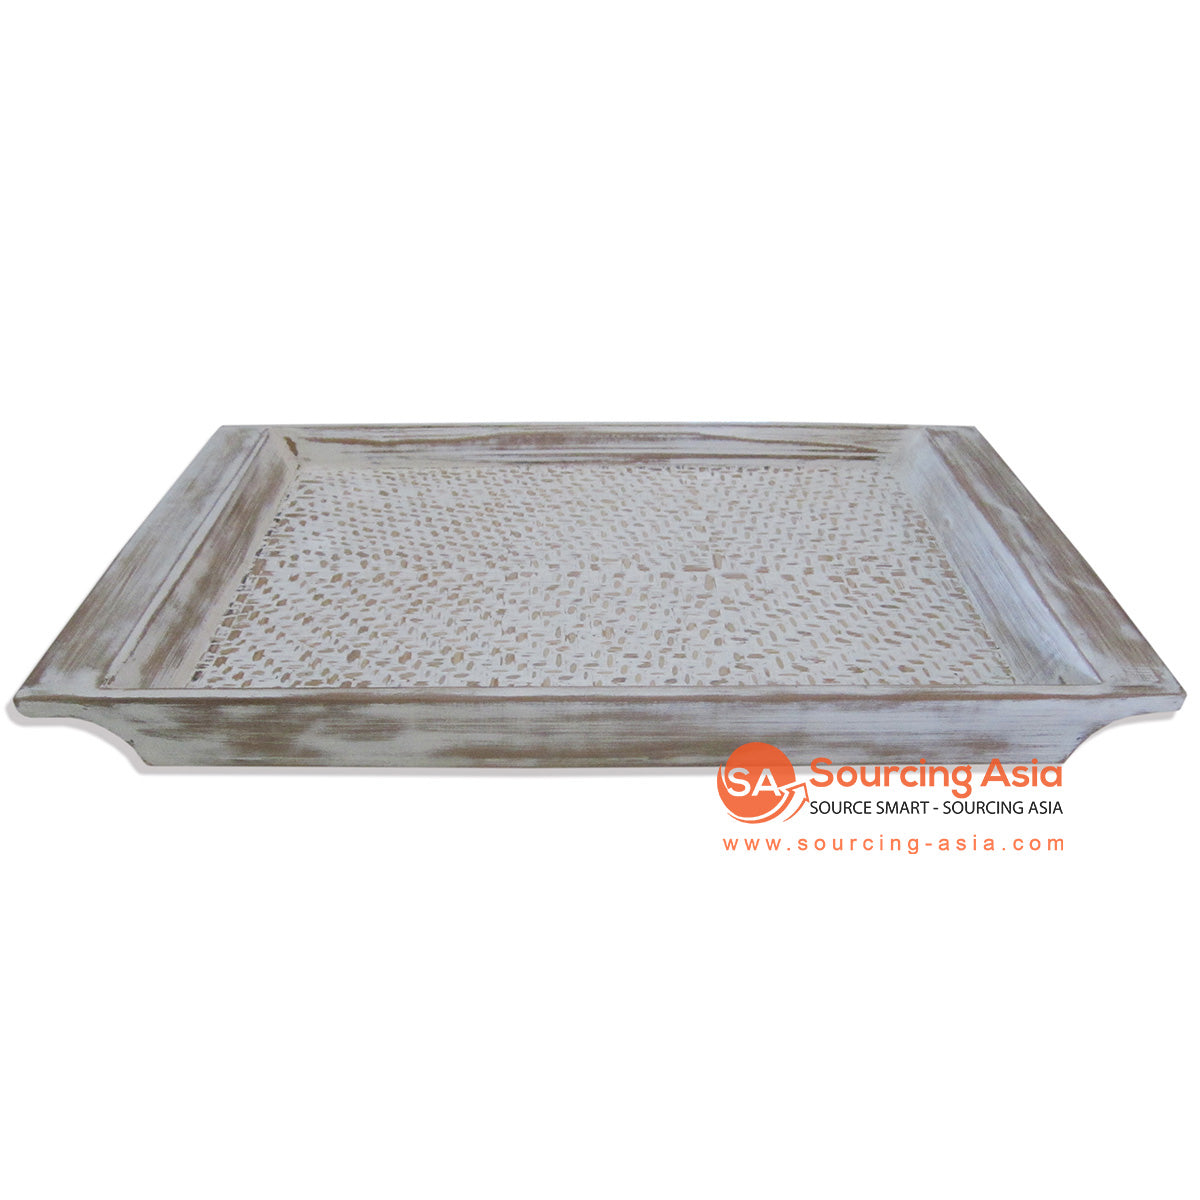 SOP026 WOODEN TRAY